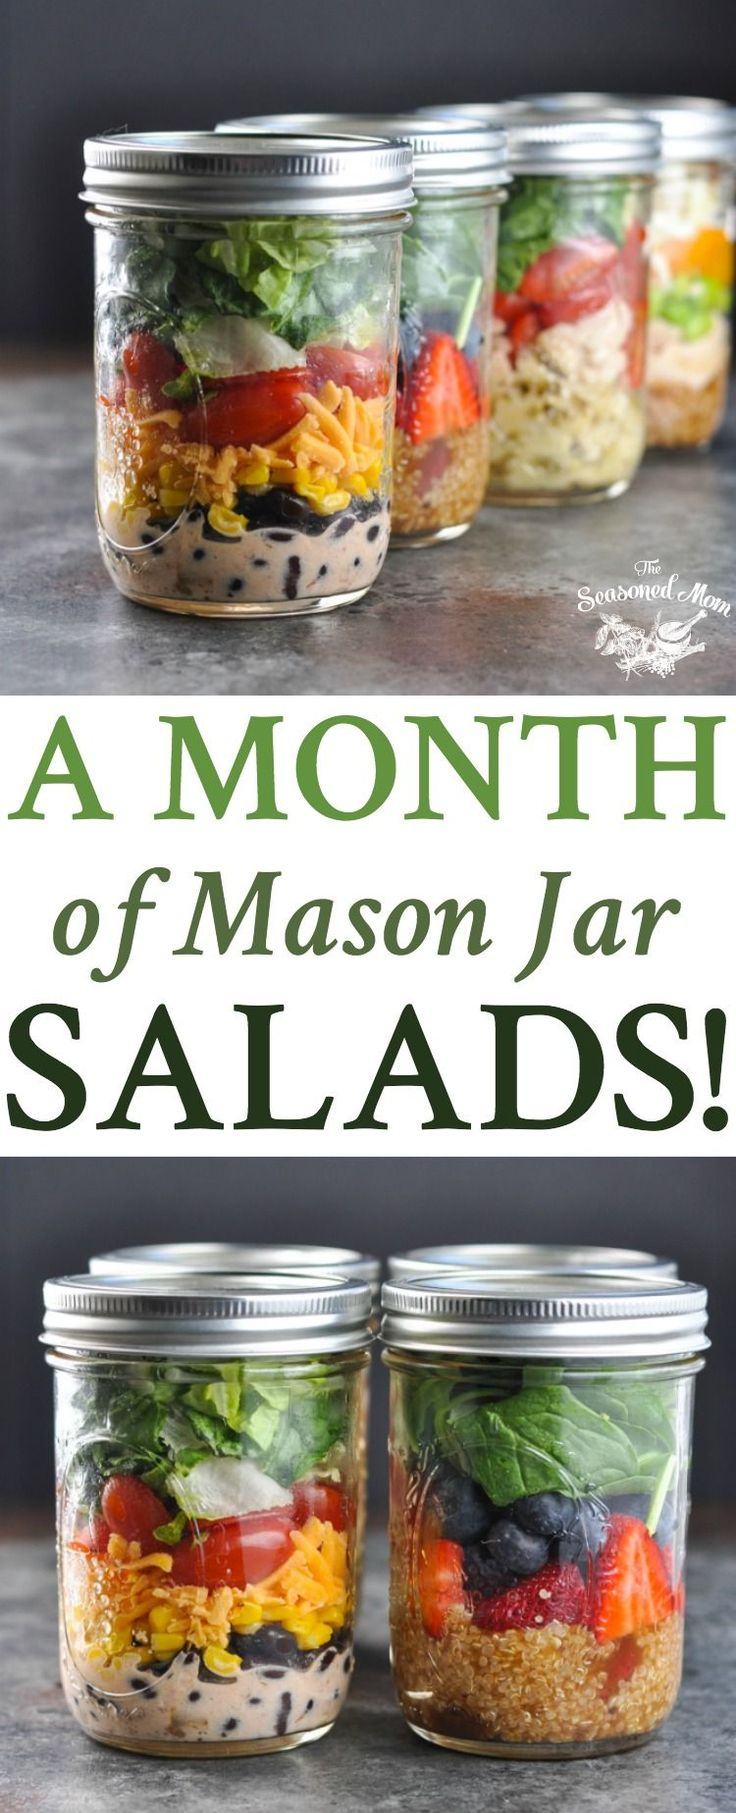 A Month of Mason Jar Salads! Meal Prep | Salad Recipes | Meal Prep for the Week | Meal Prep Recipes | Healthy Lunch Recipes | Lunch Ideas | Healthy Recipes | Healthy Dinner Recipes | Mason Jar Meals